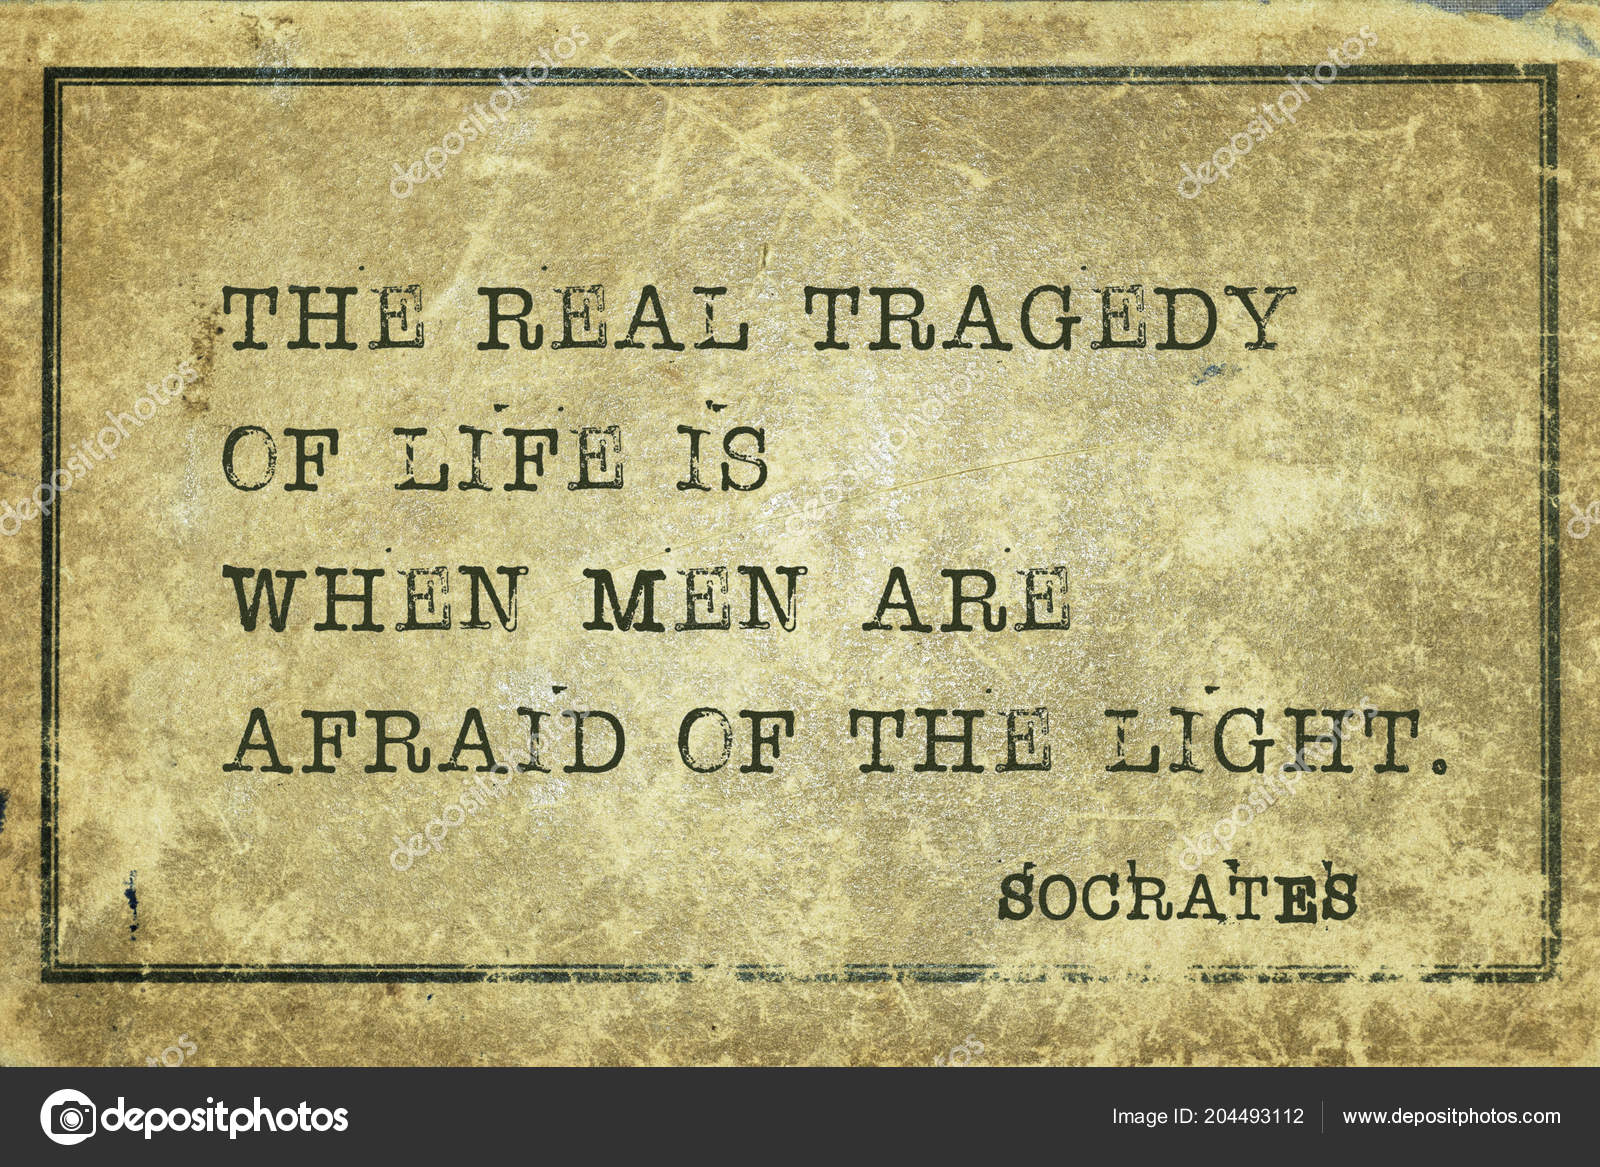 Real Tragedy Life Men Afraid Light Ancient Greek Philosopher